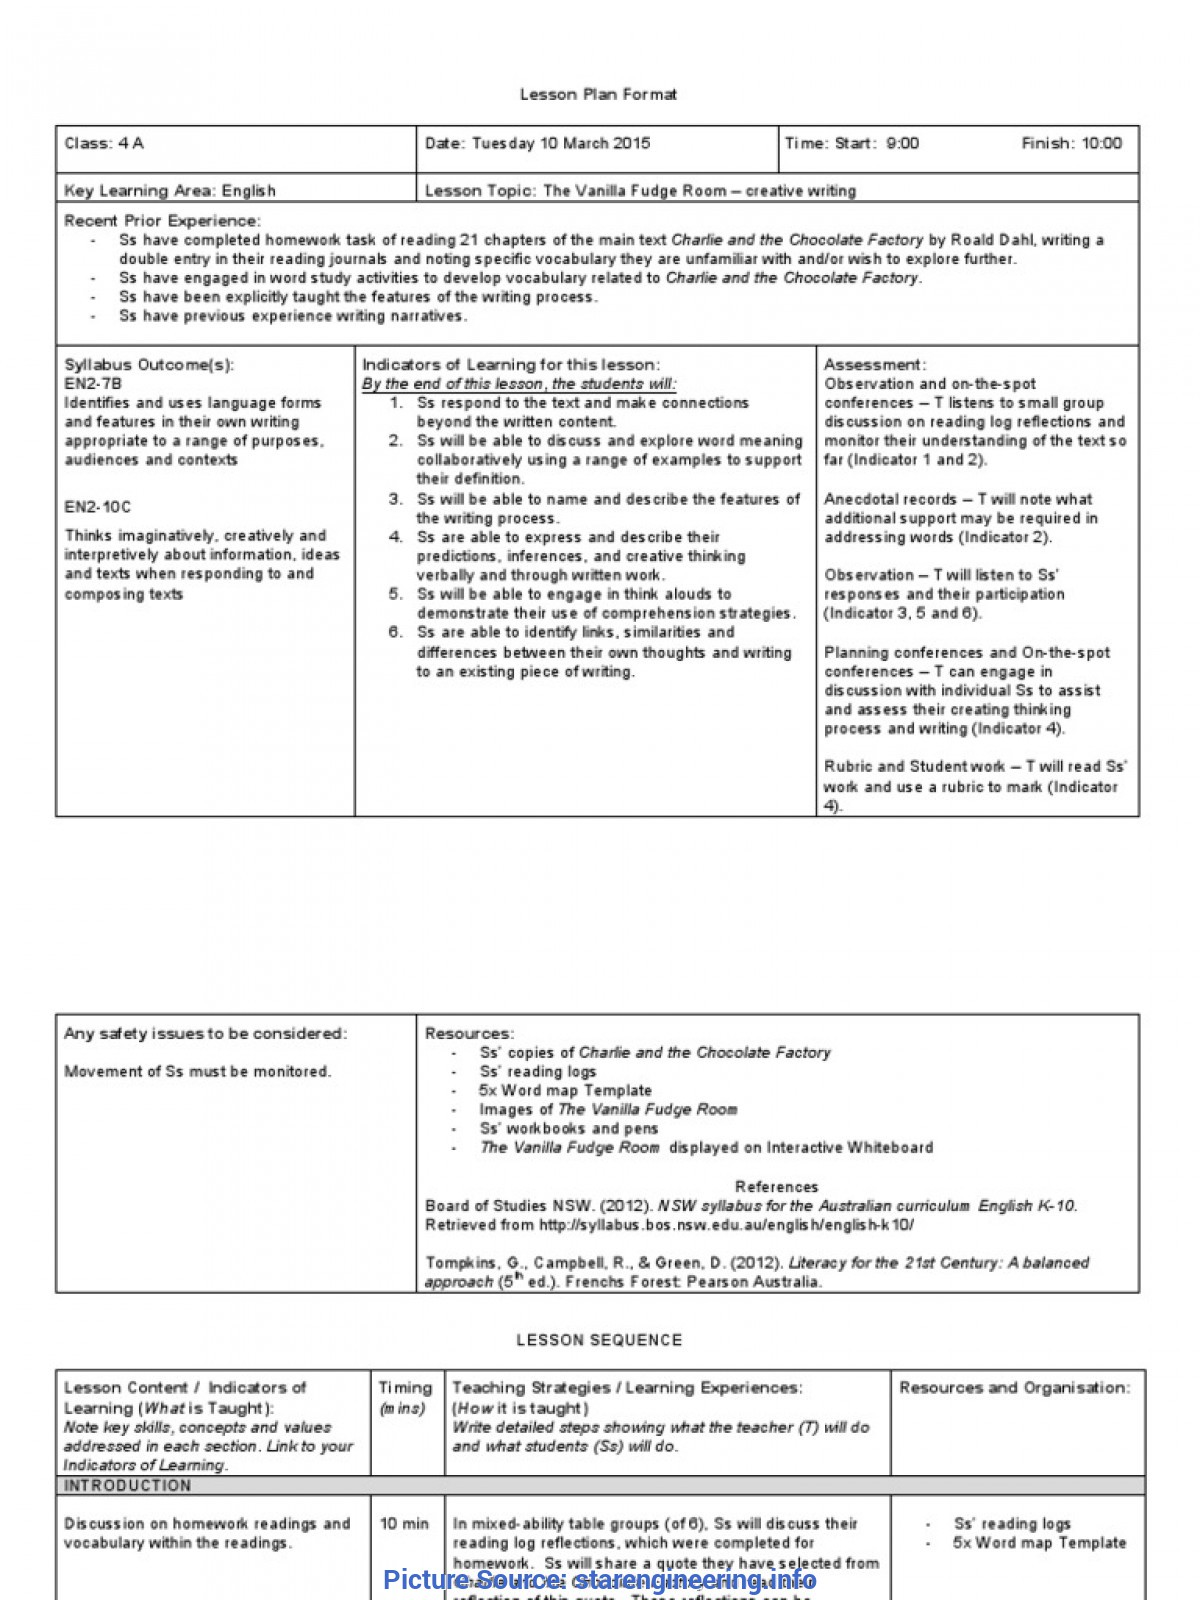 Great Lesson Plan Template Nsw Det Lesson Plan Template Nsw Det - Starenginee